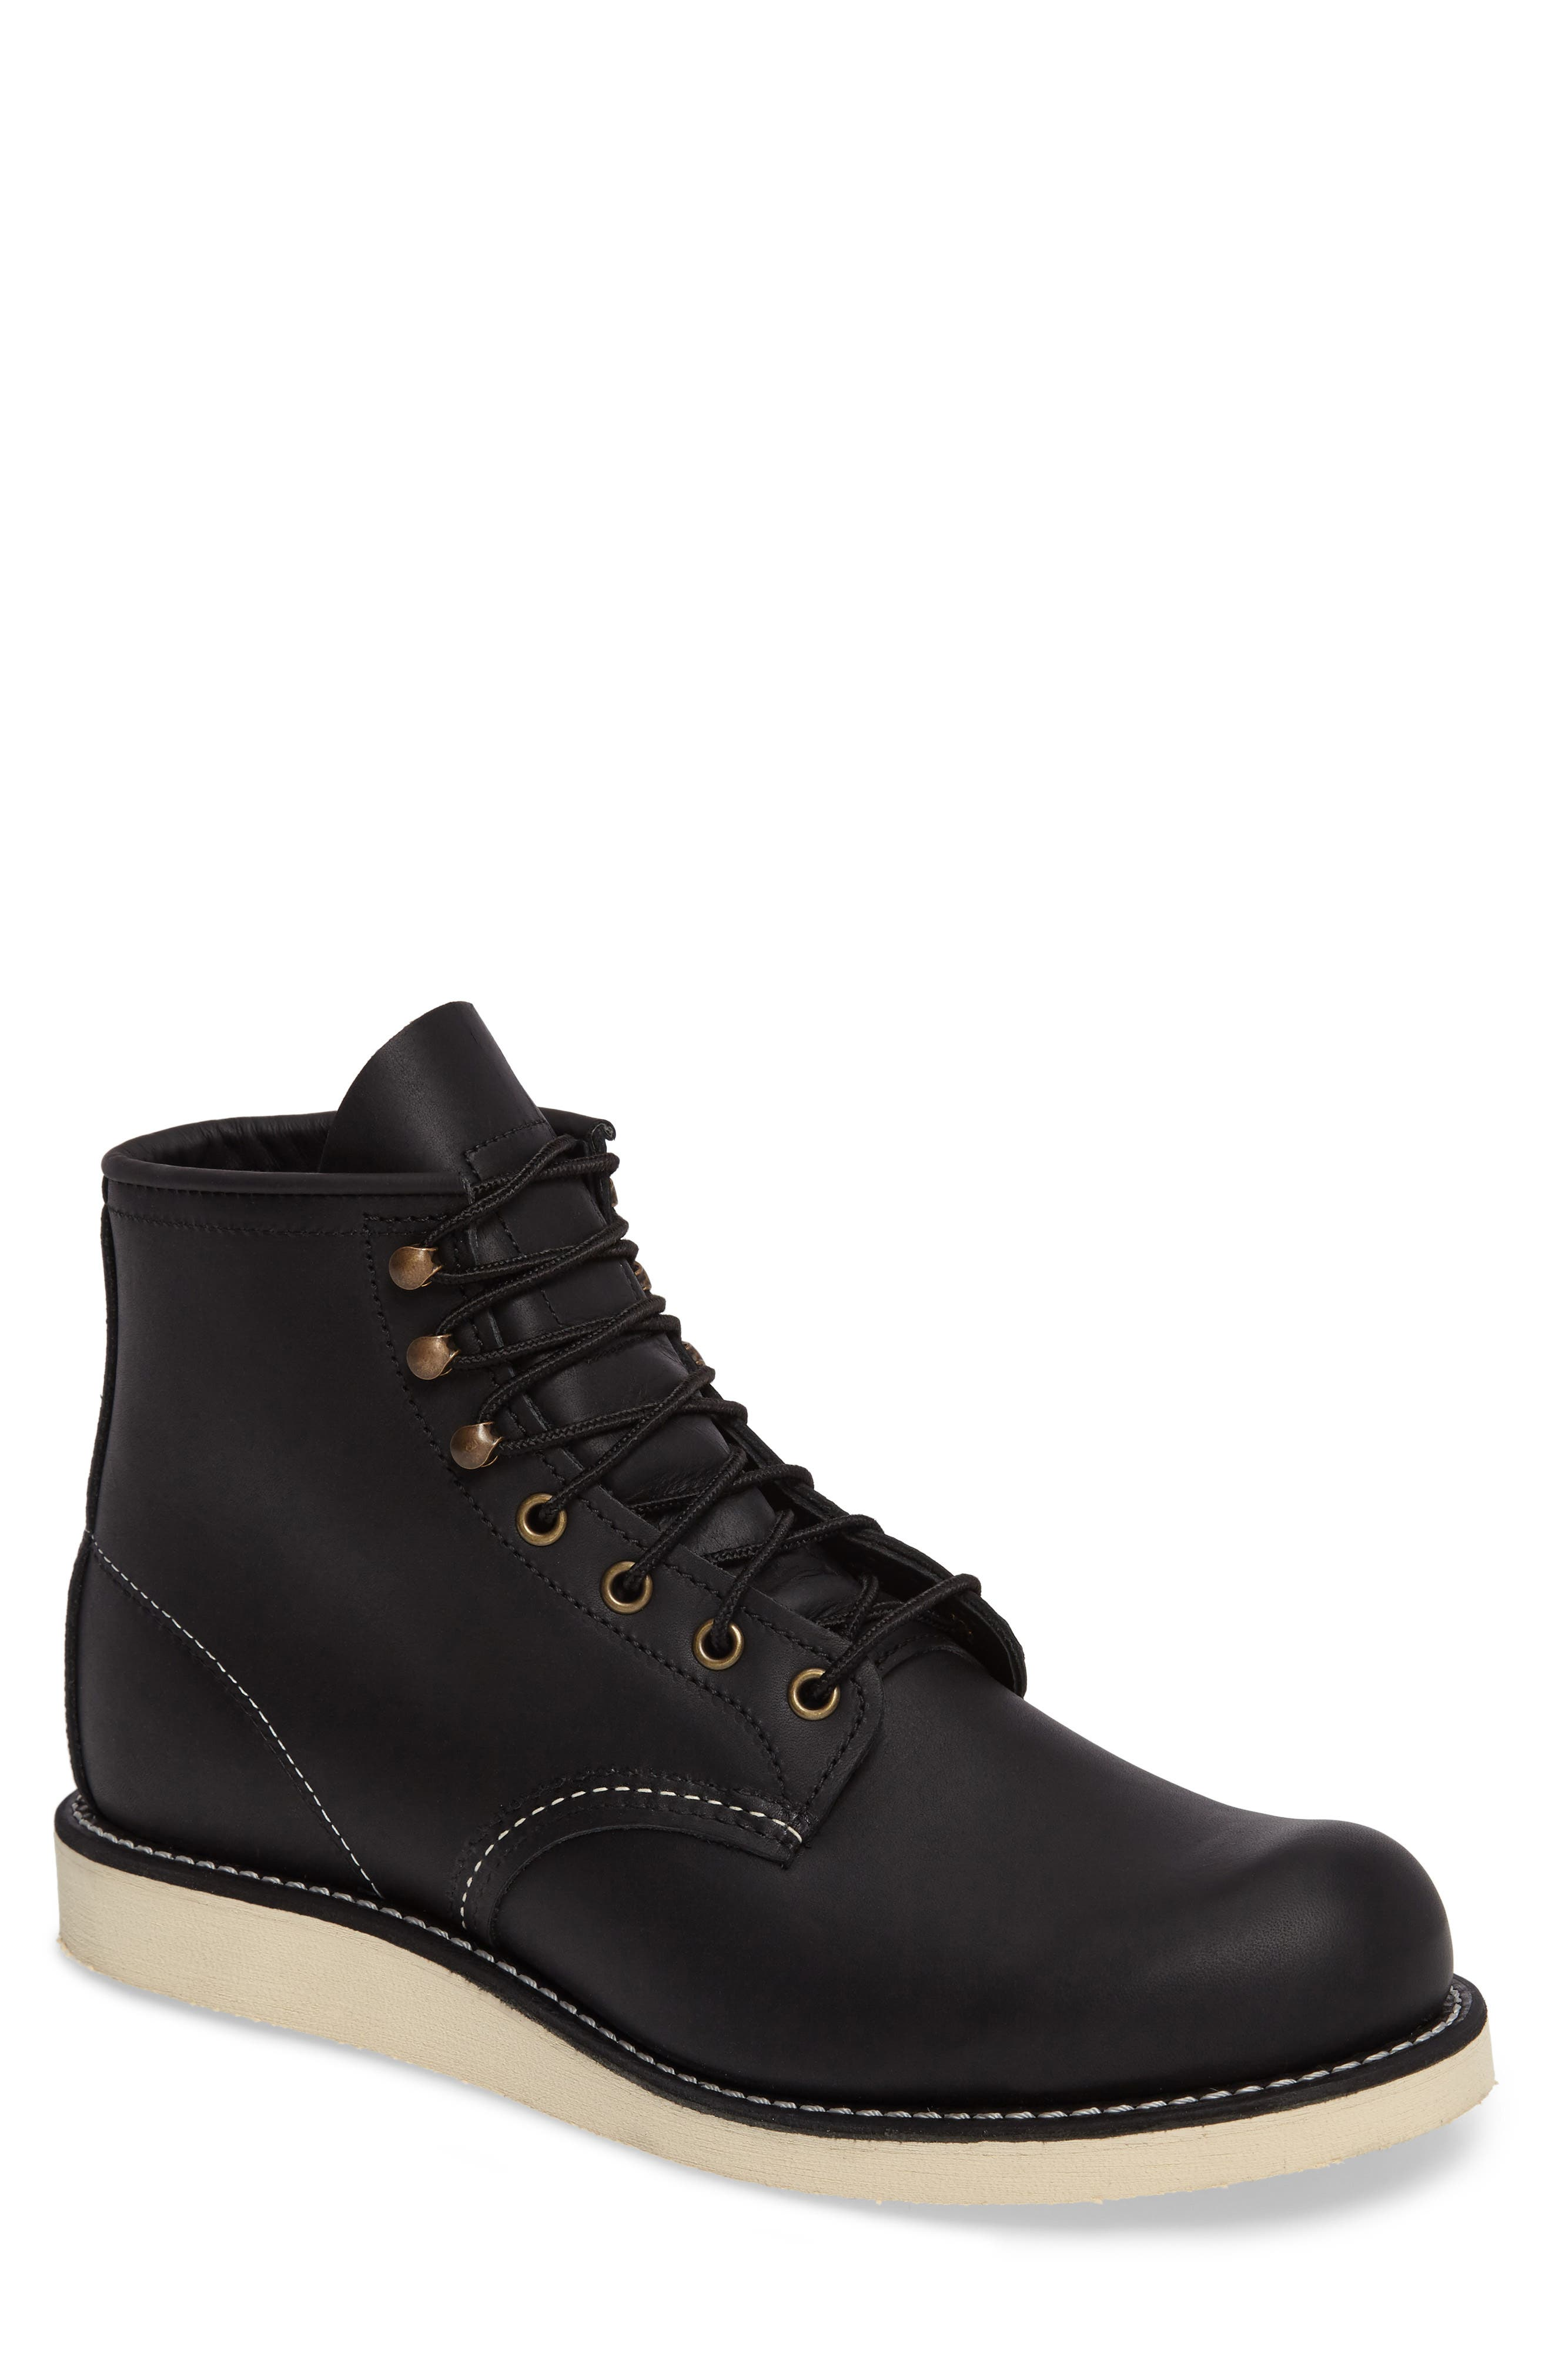 Rover Plain Toe Boot,                         Main,                         color, Black Harness Leather